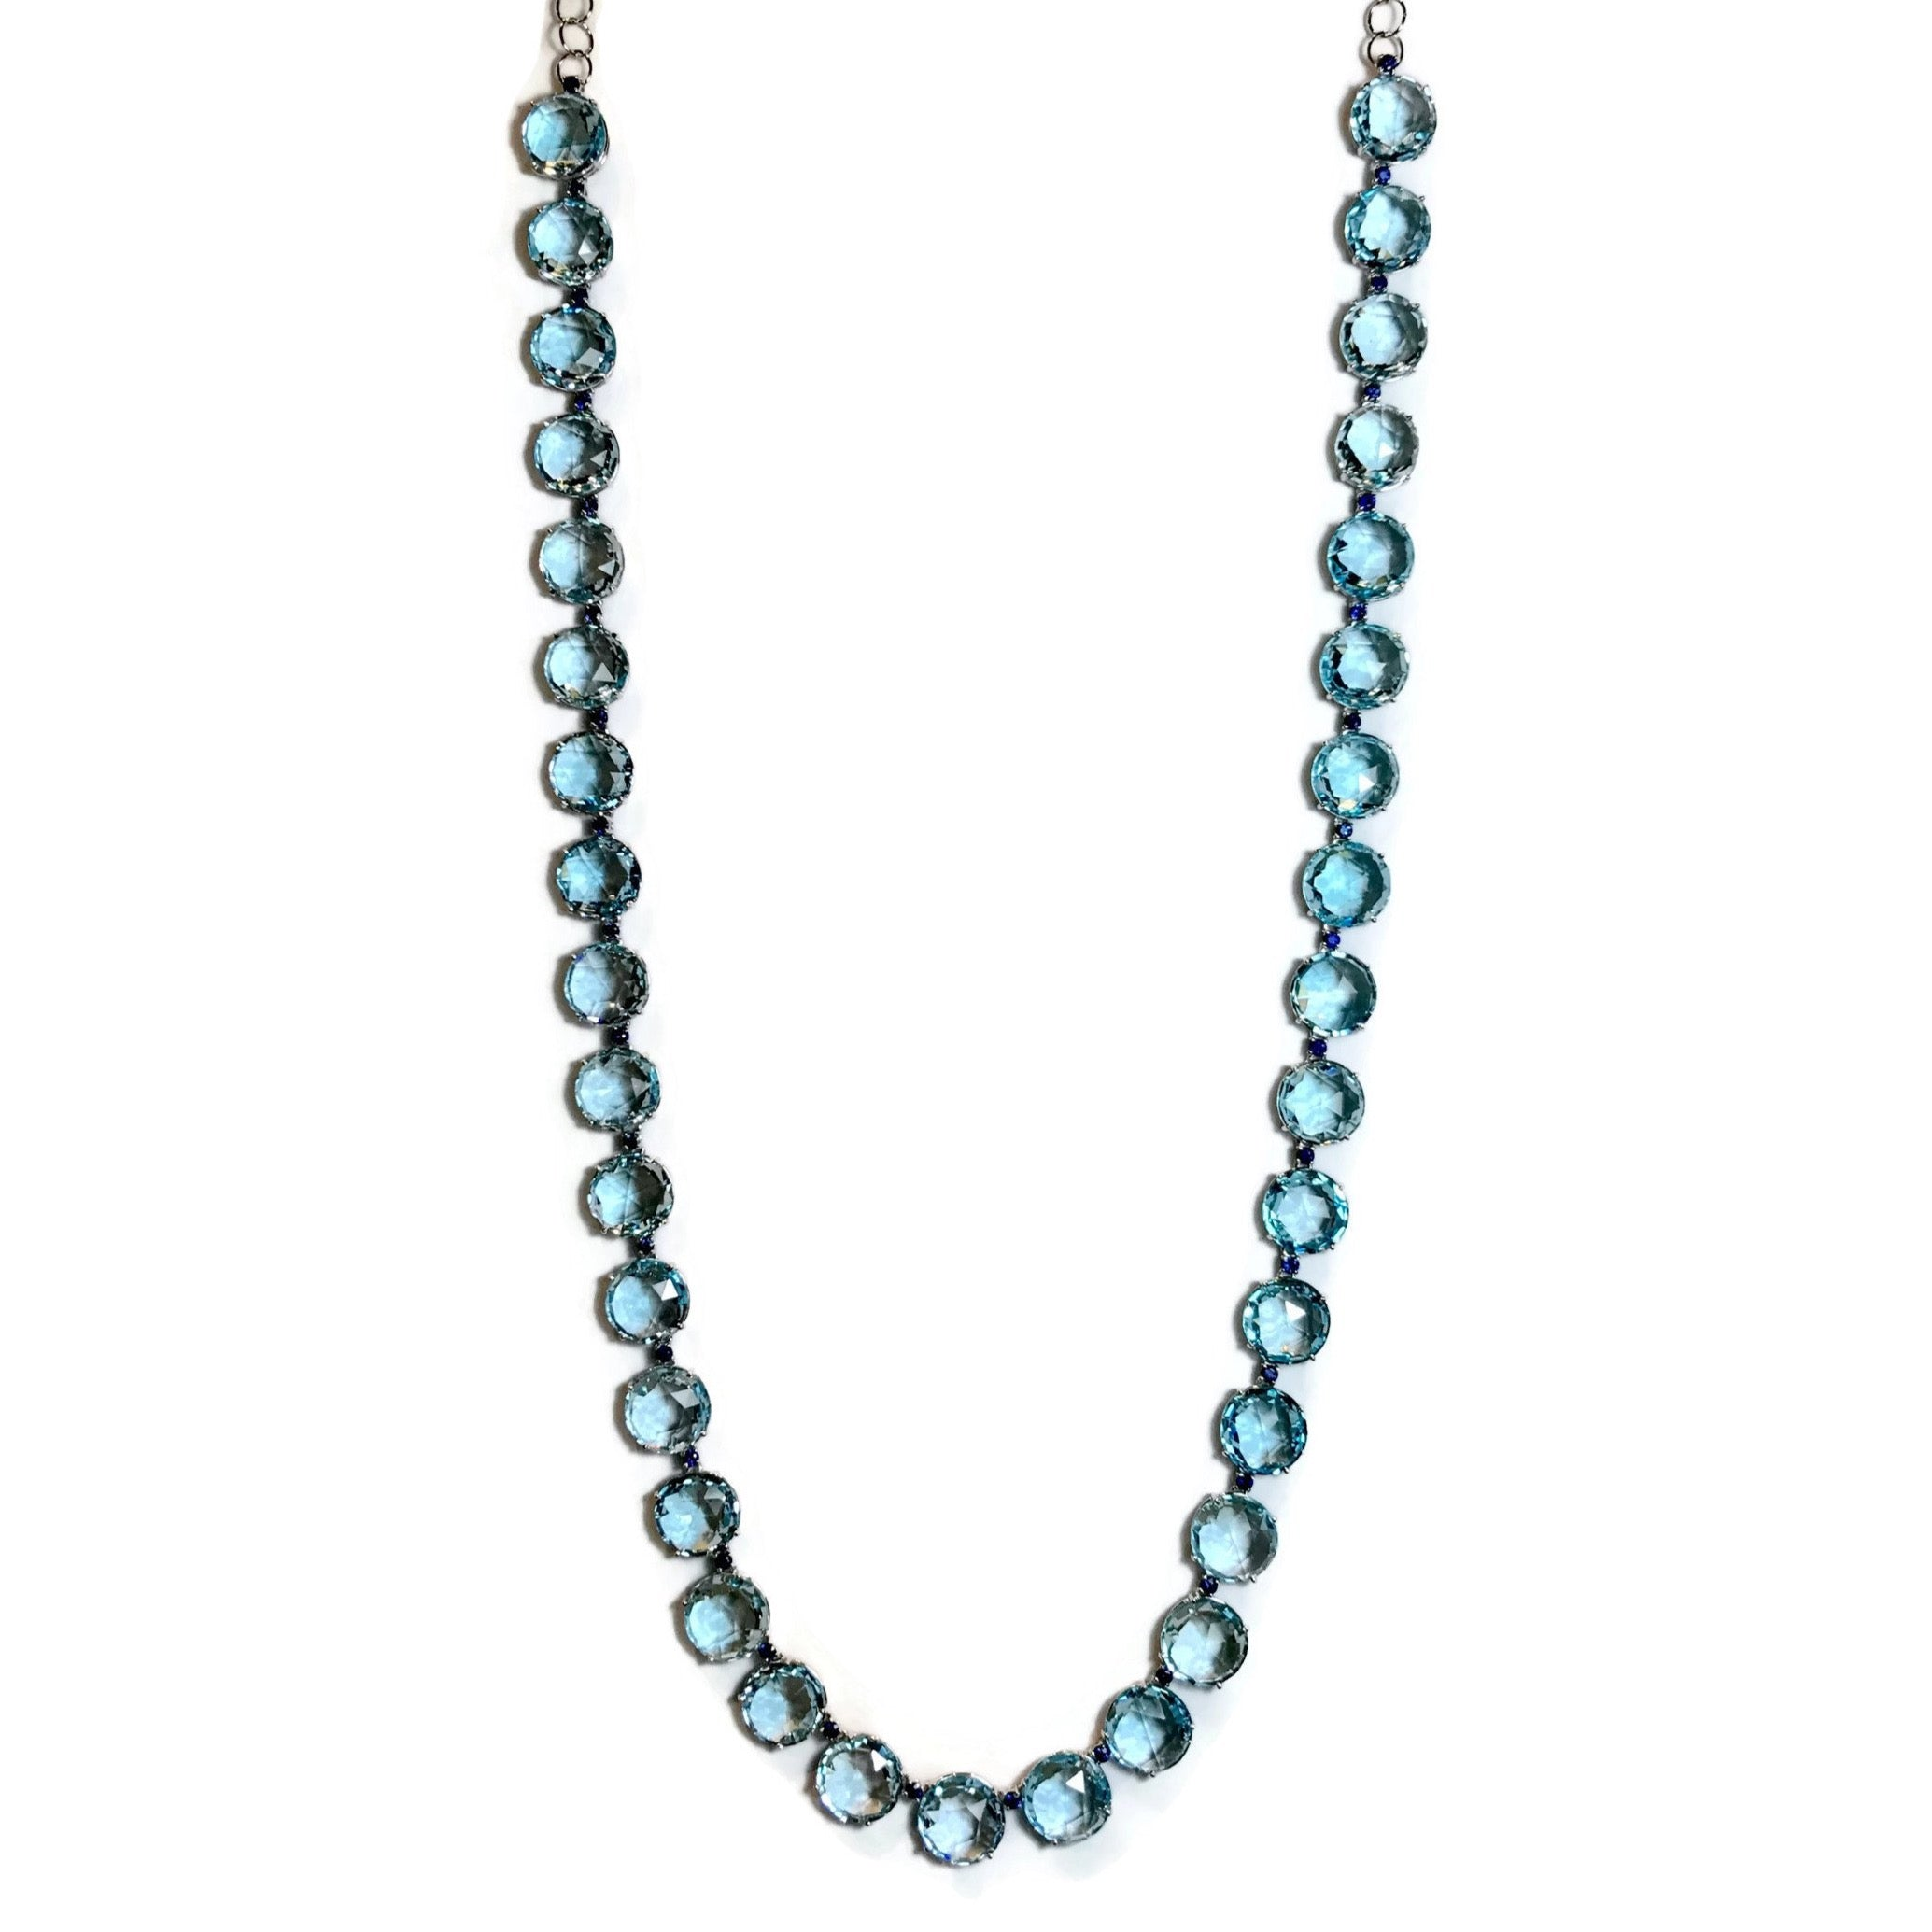 A-FURST-LILLIES-LONG-NECKLACE-BLUE-TOPAZ-SAPPHIRES-WHITE-GOLD-C1400BU4